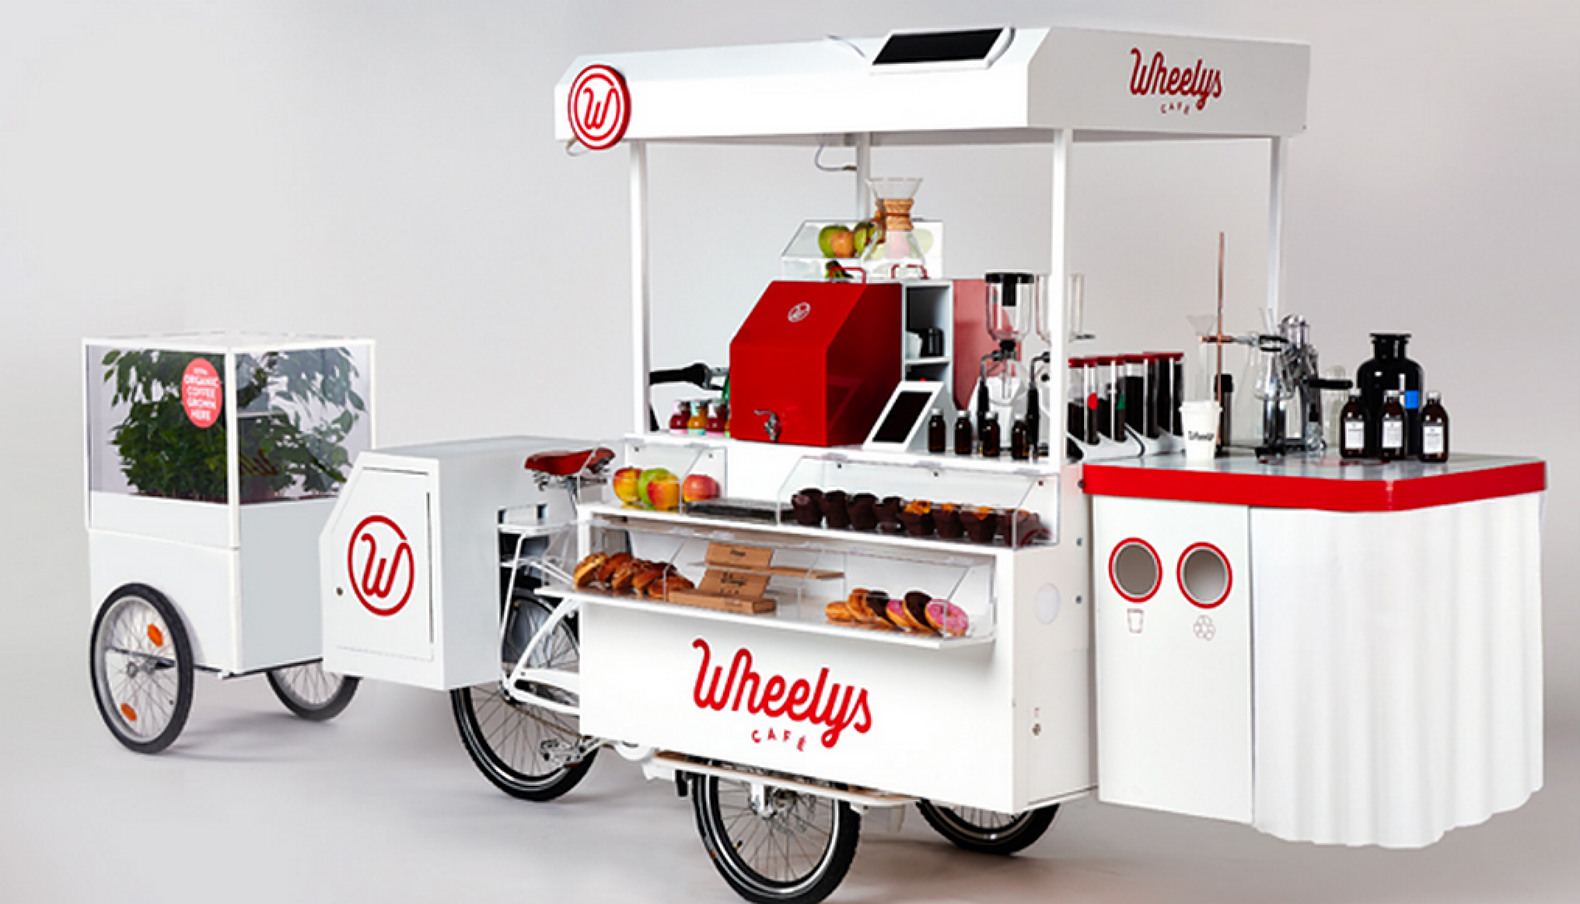 Wheelys 3 Is A Tiny Solar Powered Coffee Shop On Wheels With Mini Greenhouse Attached